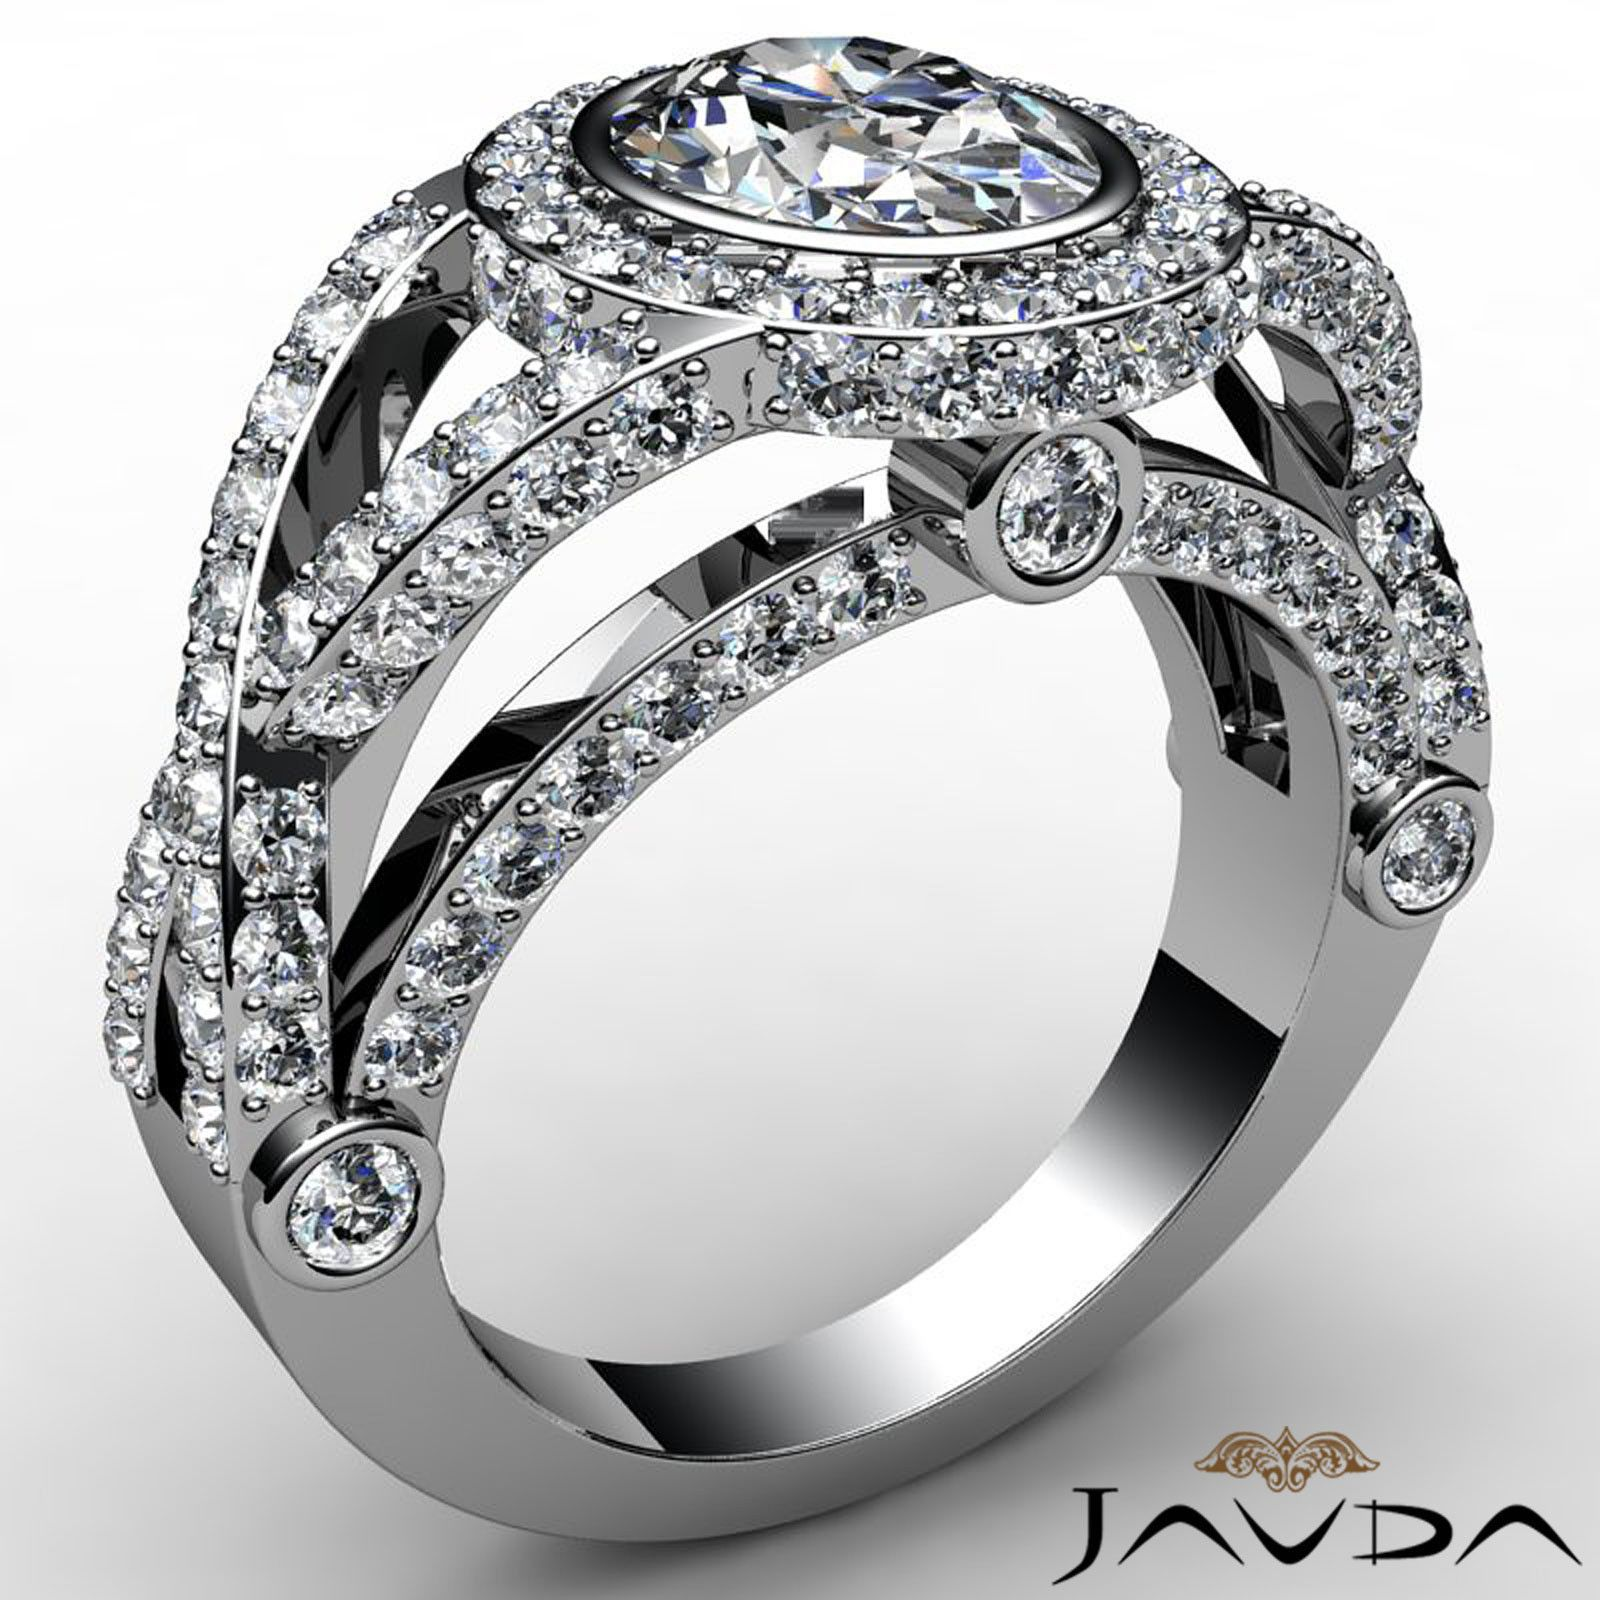 Twist shank oval diamond designer pave engagement ring gia g si